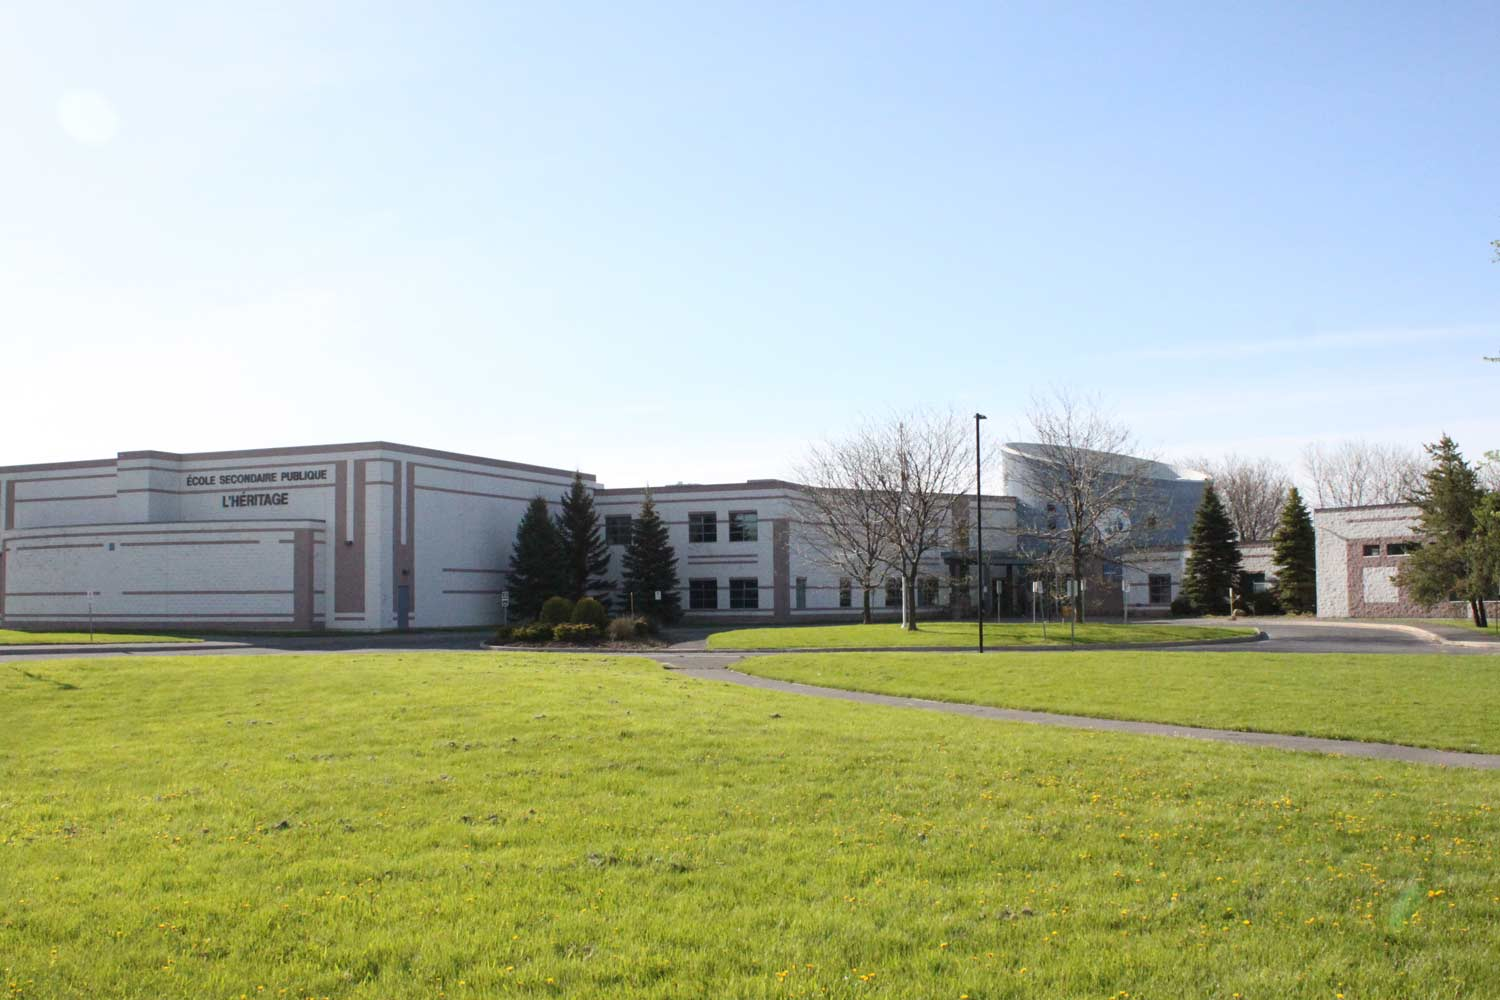 L'Heritage Secondary School